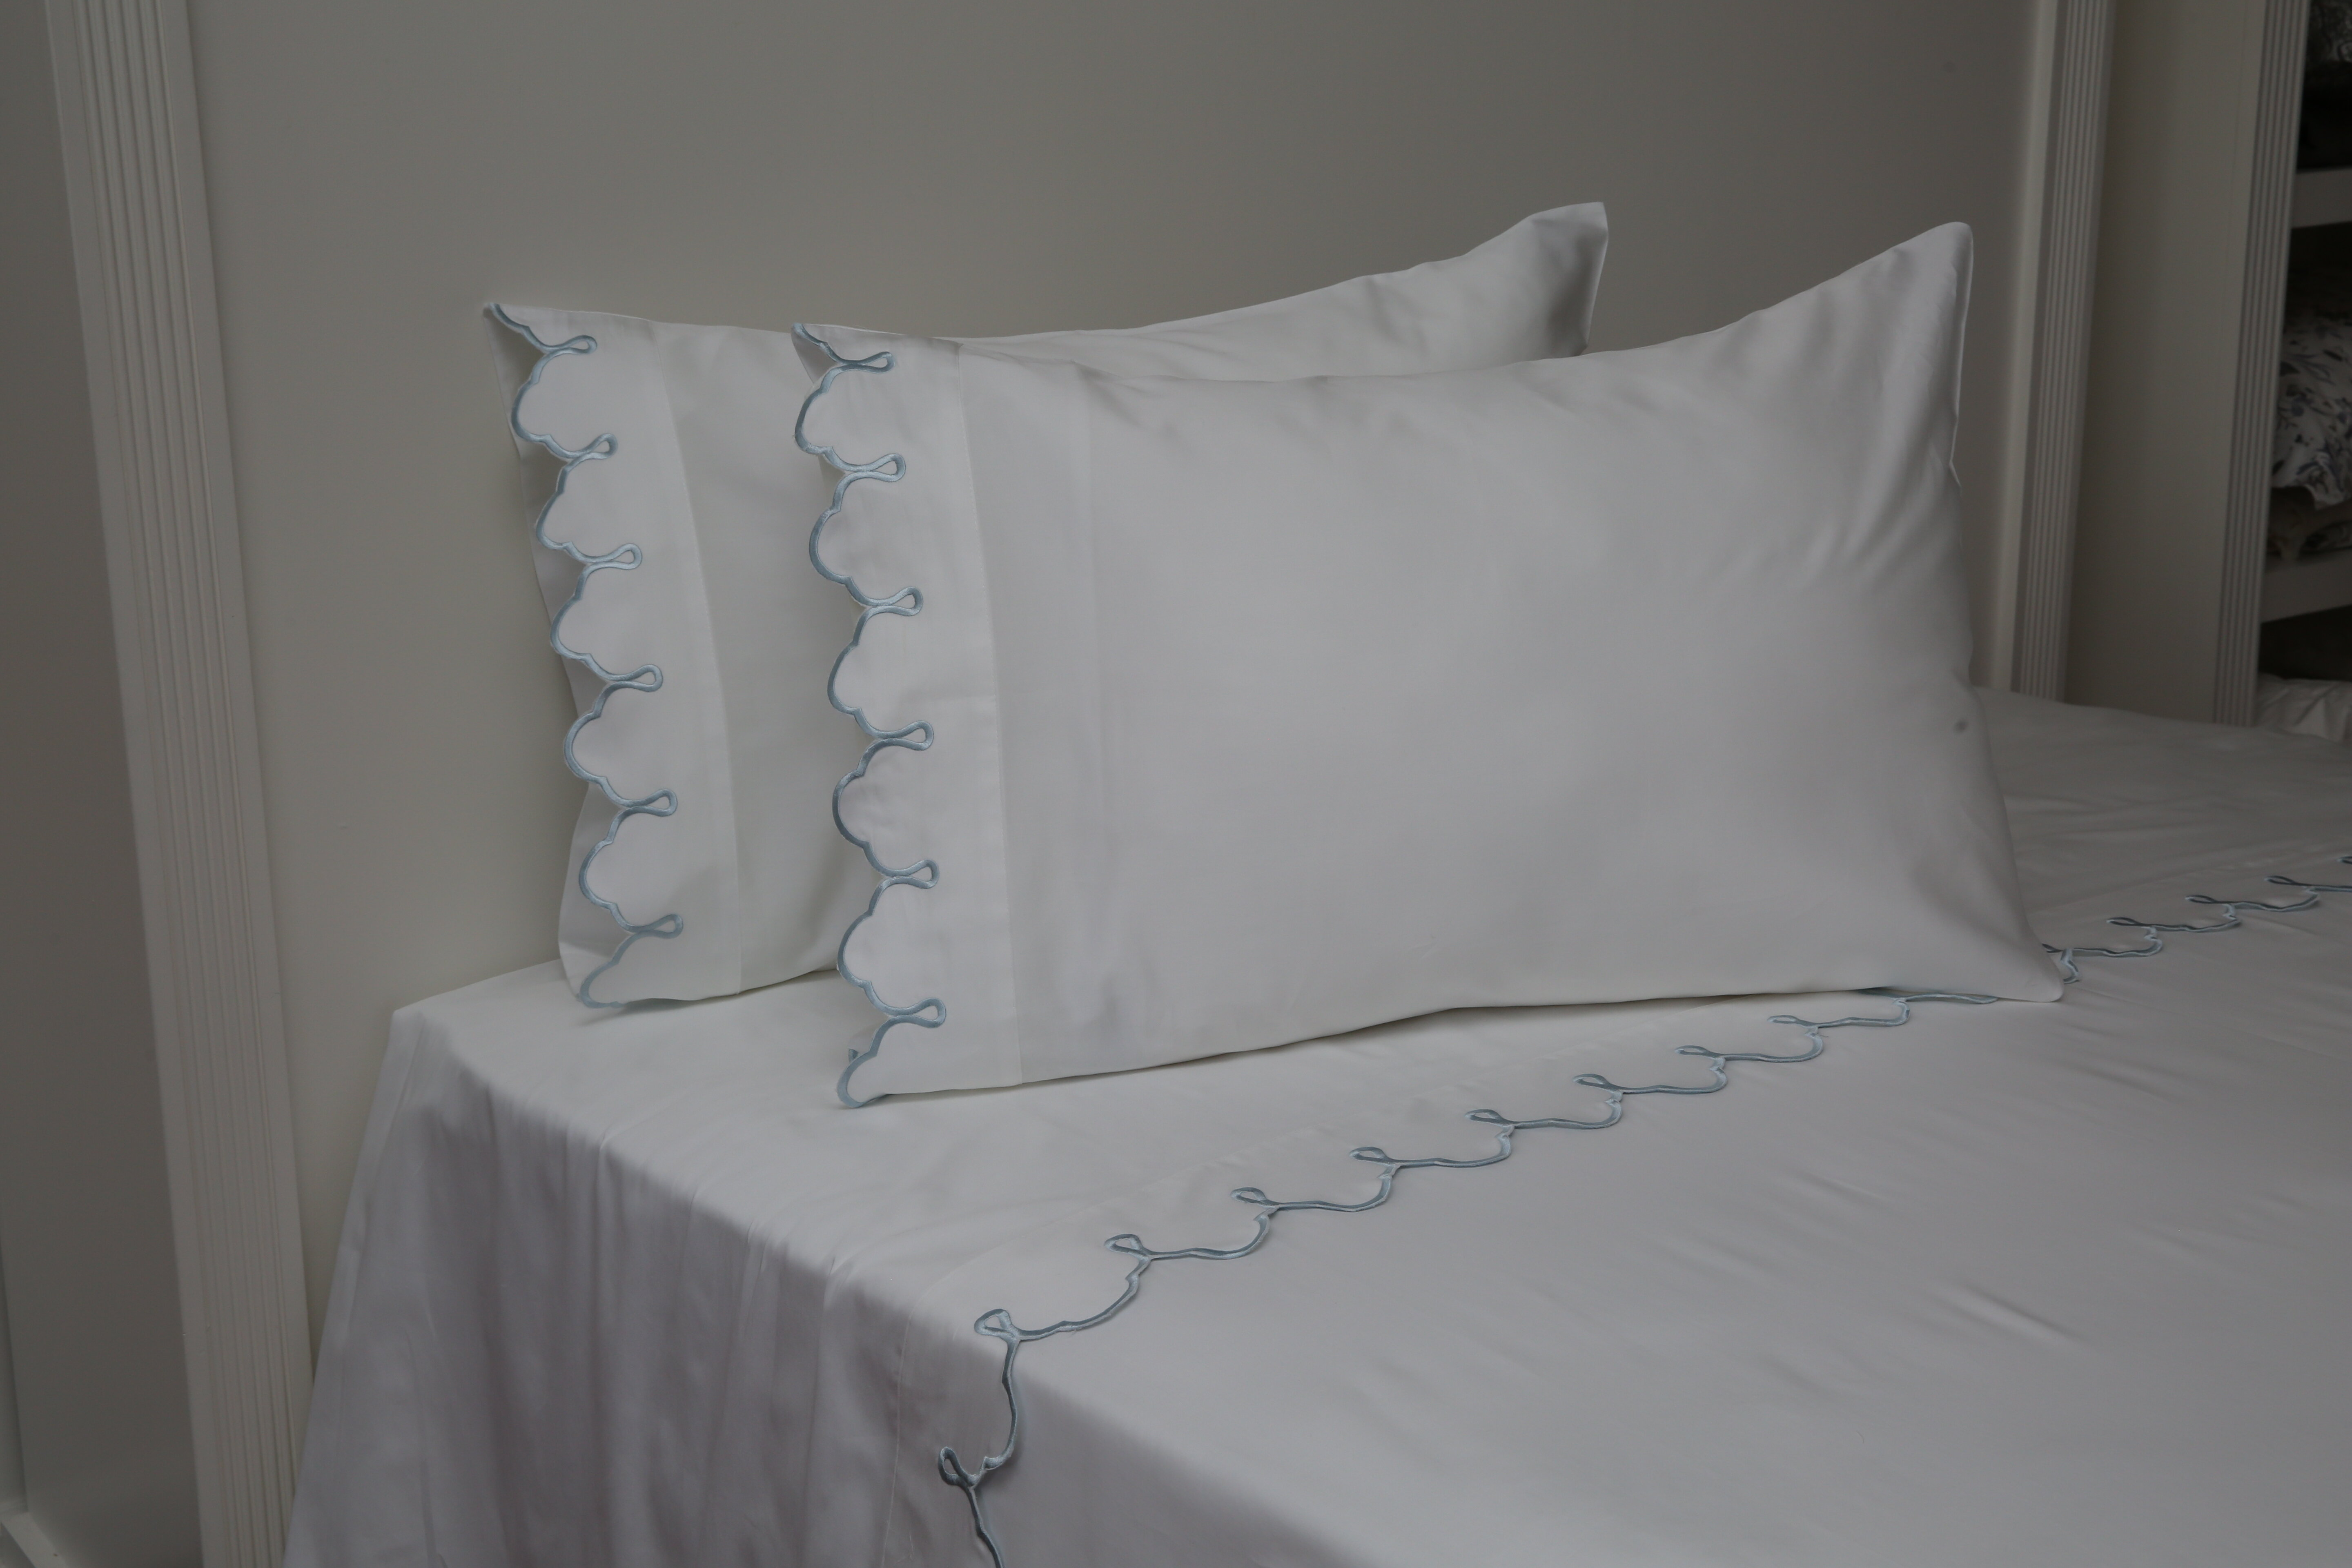 New Sealed Queen Size Fitted Bed Sheets /& 2 Pillowcase 100/% Cotton 1200 count